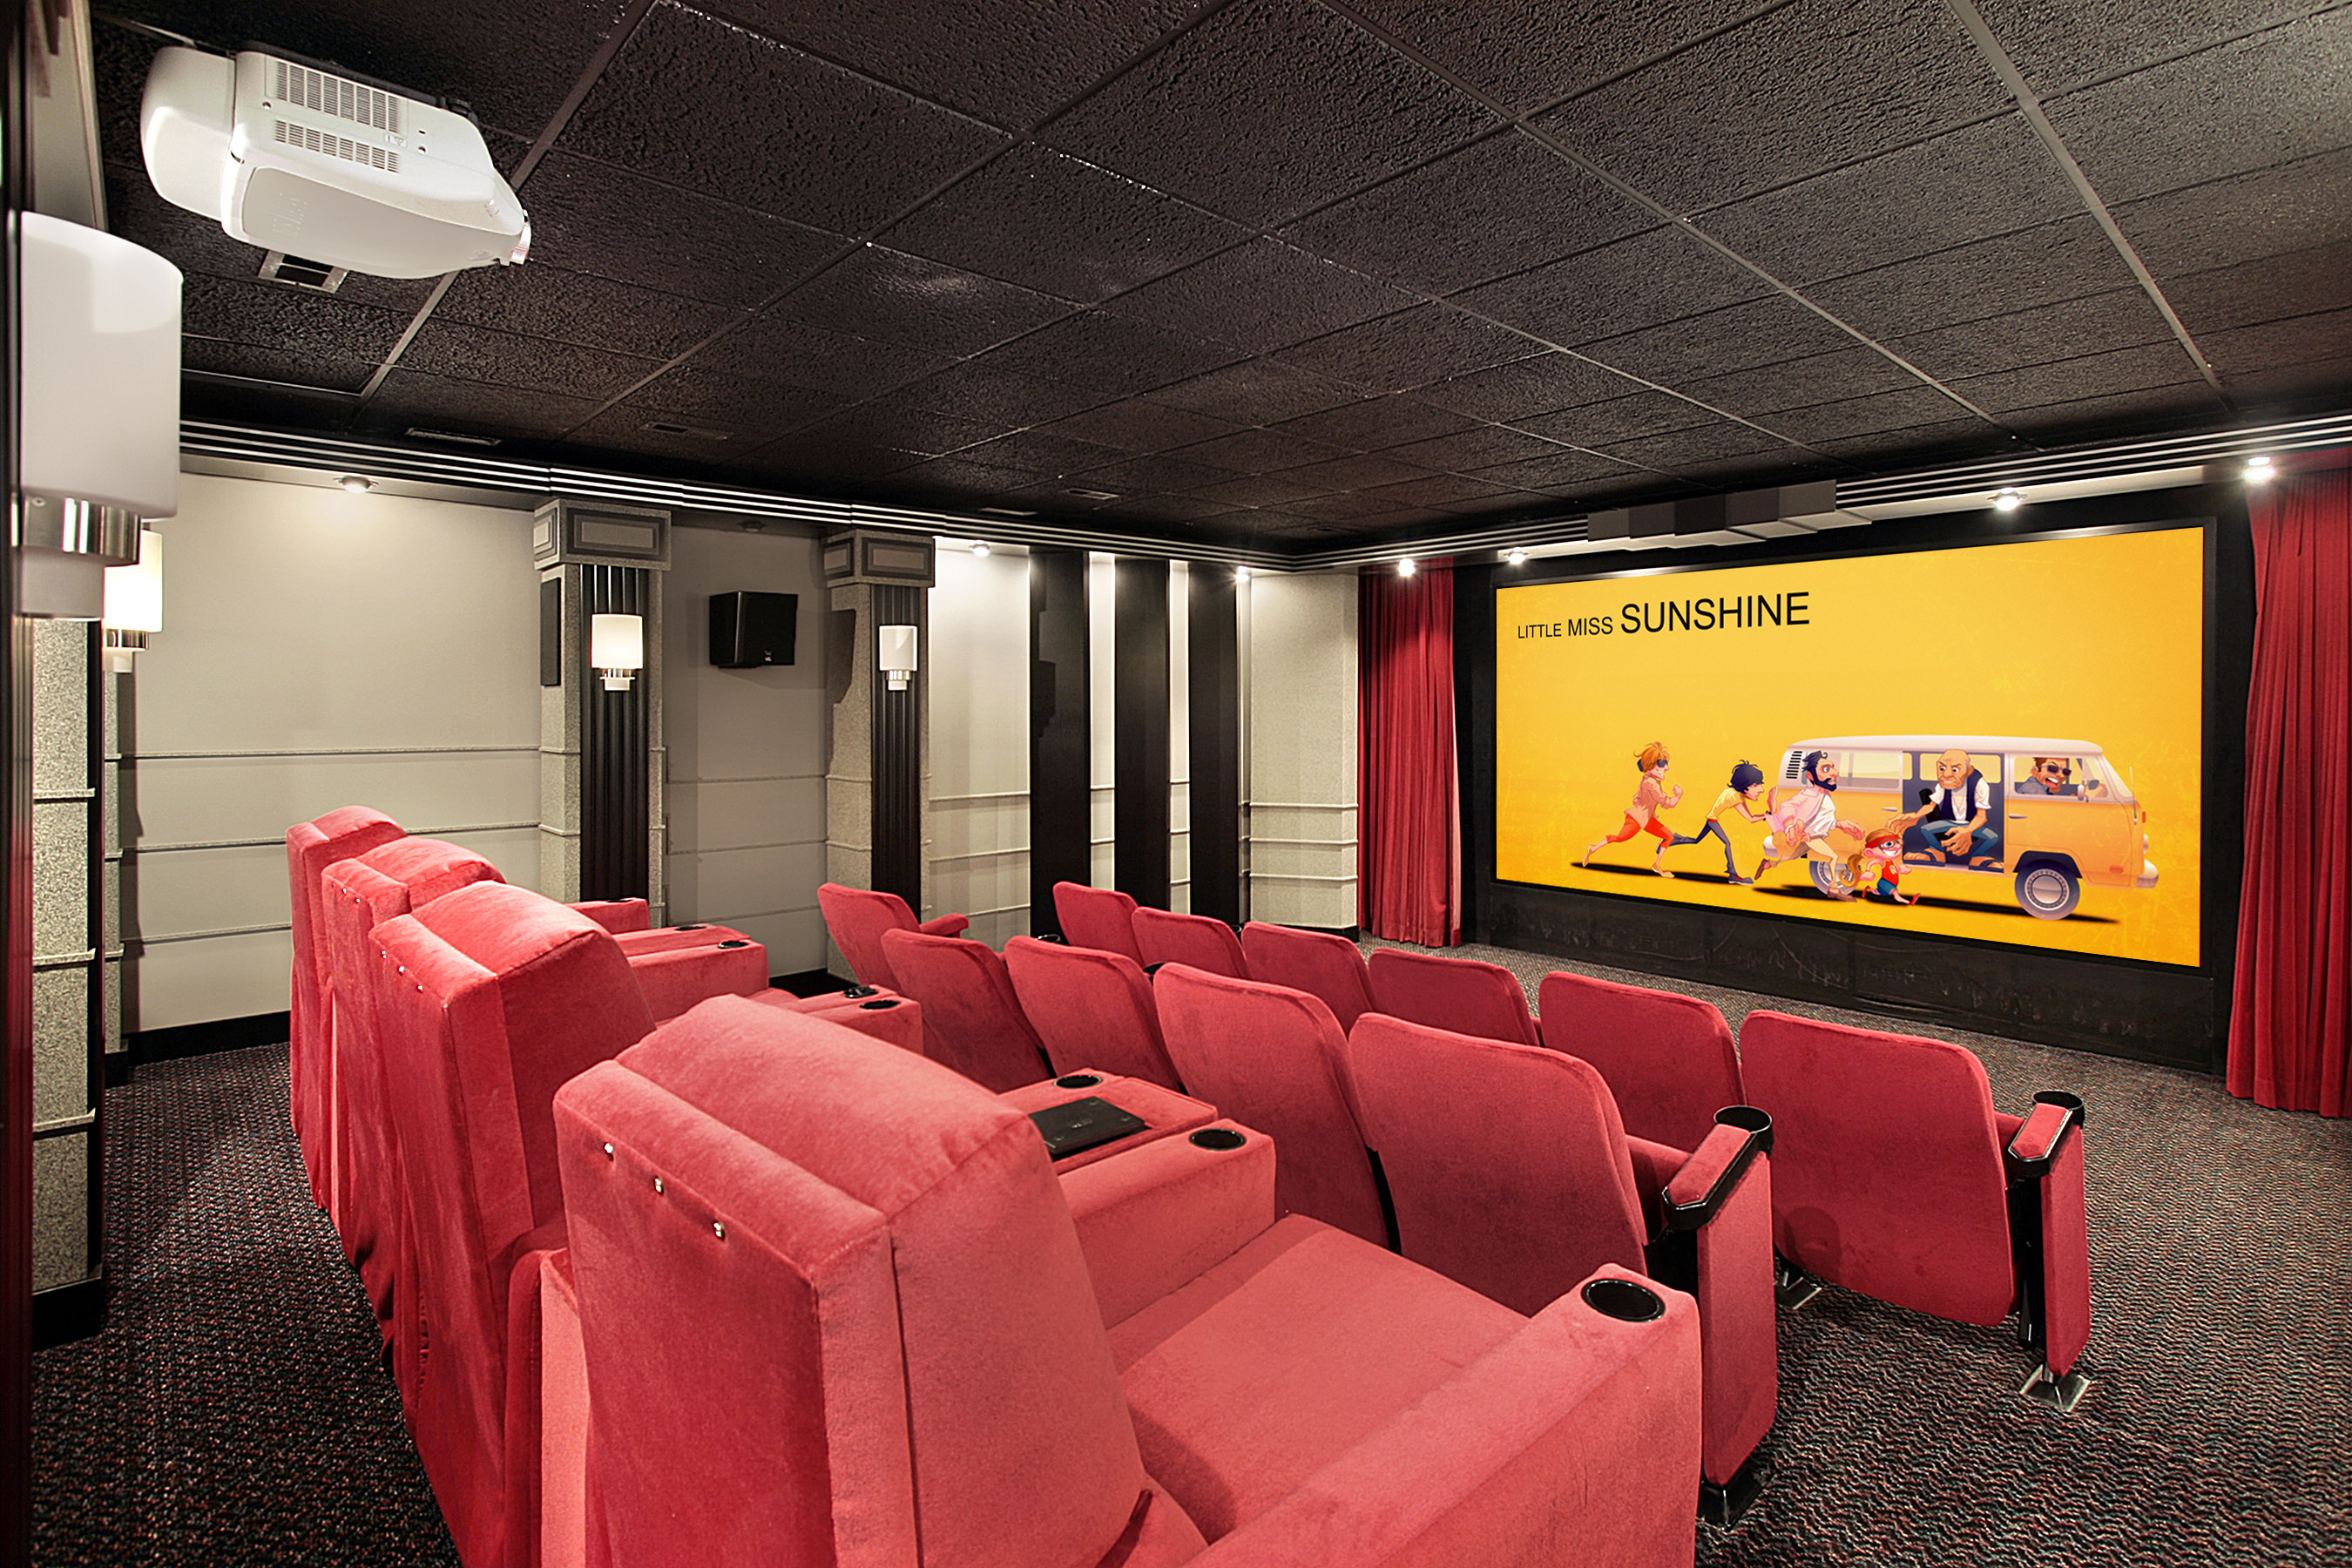 Cosy home theatre room showing off the beautiful Red velvet theatre seating with projector and screen.